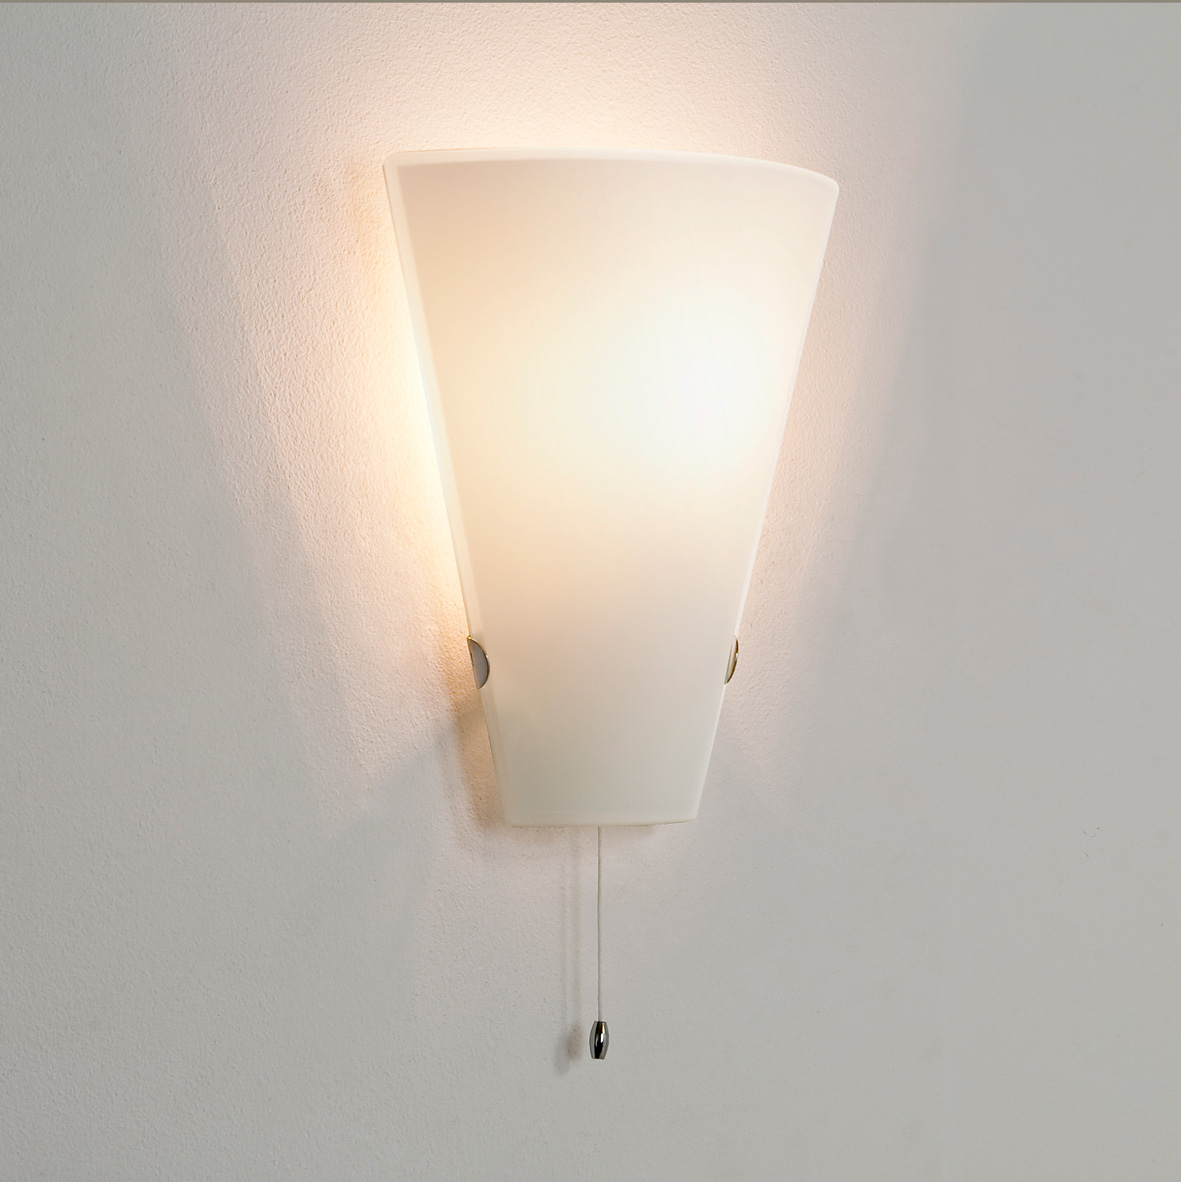 White Dimmable Wall Lights : Astro Taper 0248 dimmable pull cord switch wall light 60W E14 lamp IP20 glass Liminaires